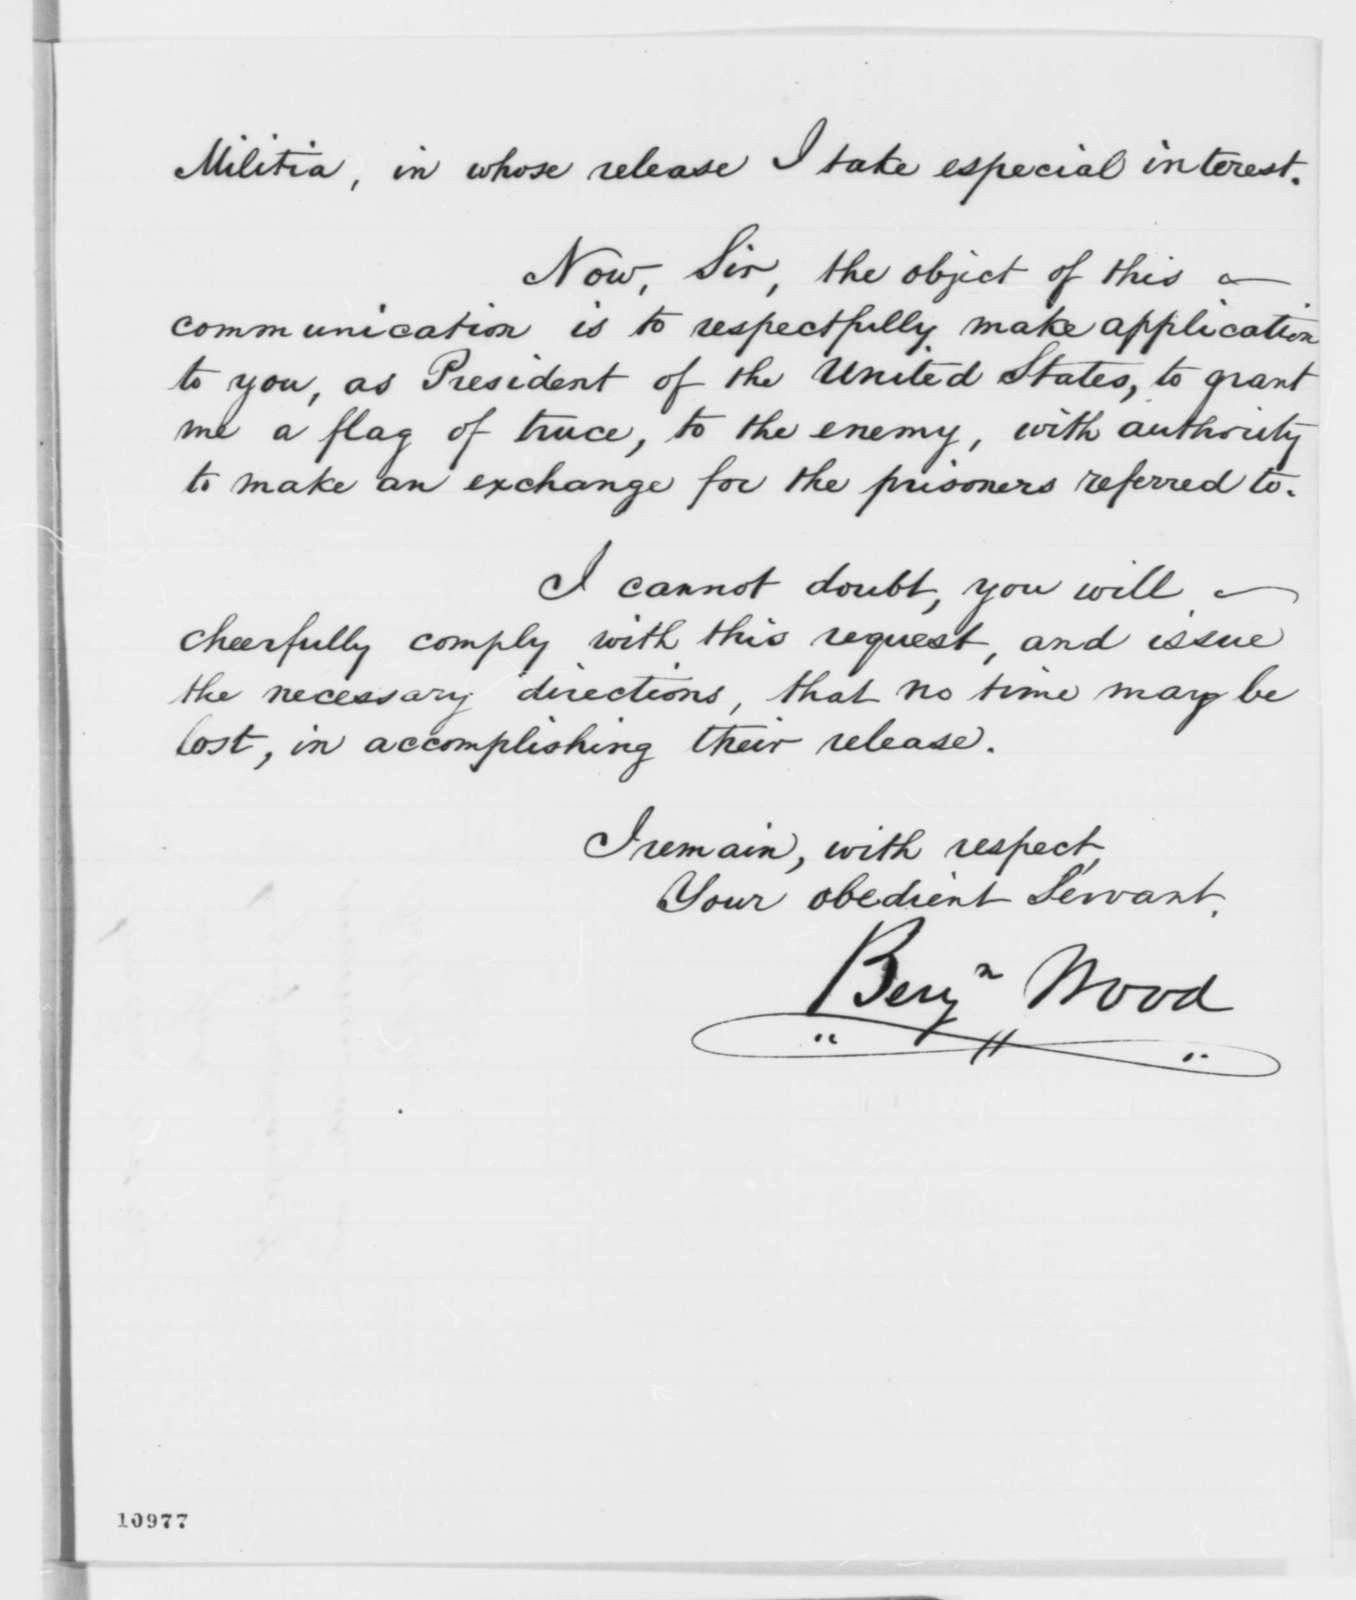 Benjamin Wood to Abraham Lincoln, Thursday, August 01, 1861  (Wants permission to exchange prisoners)